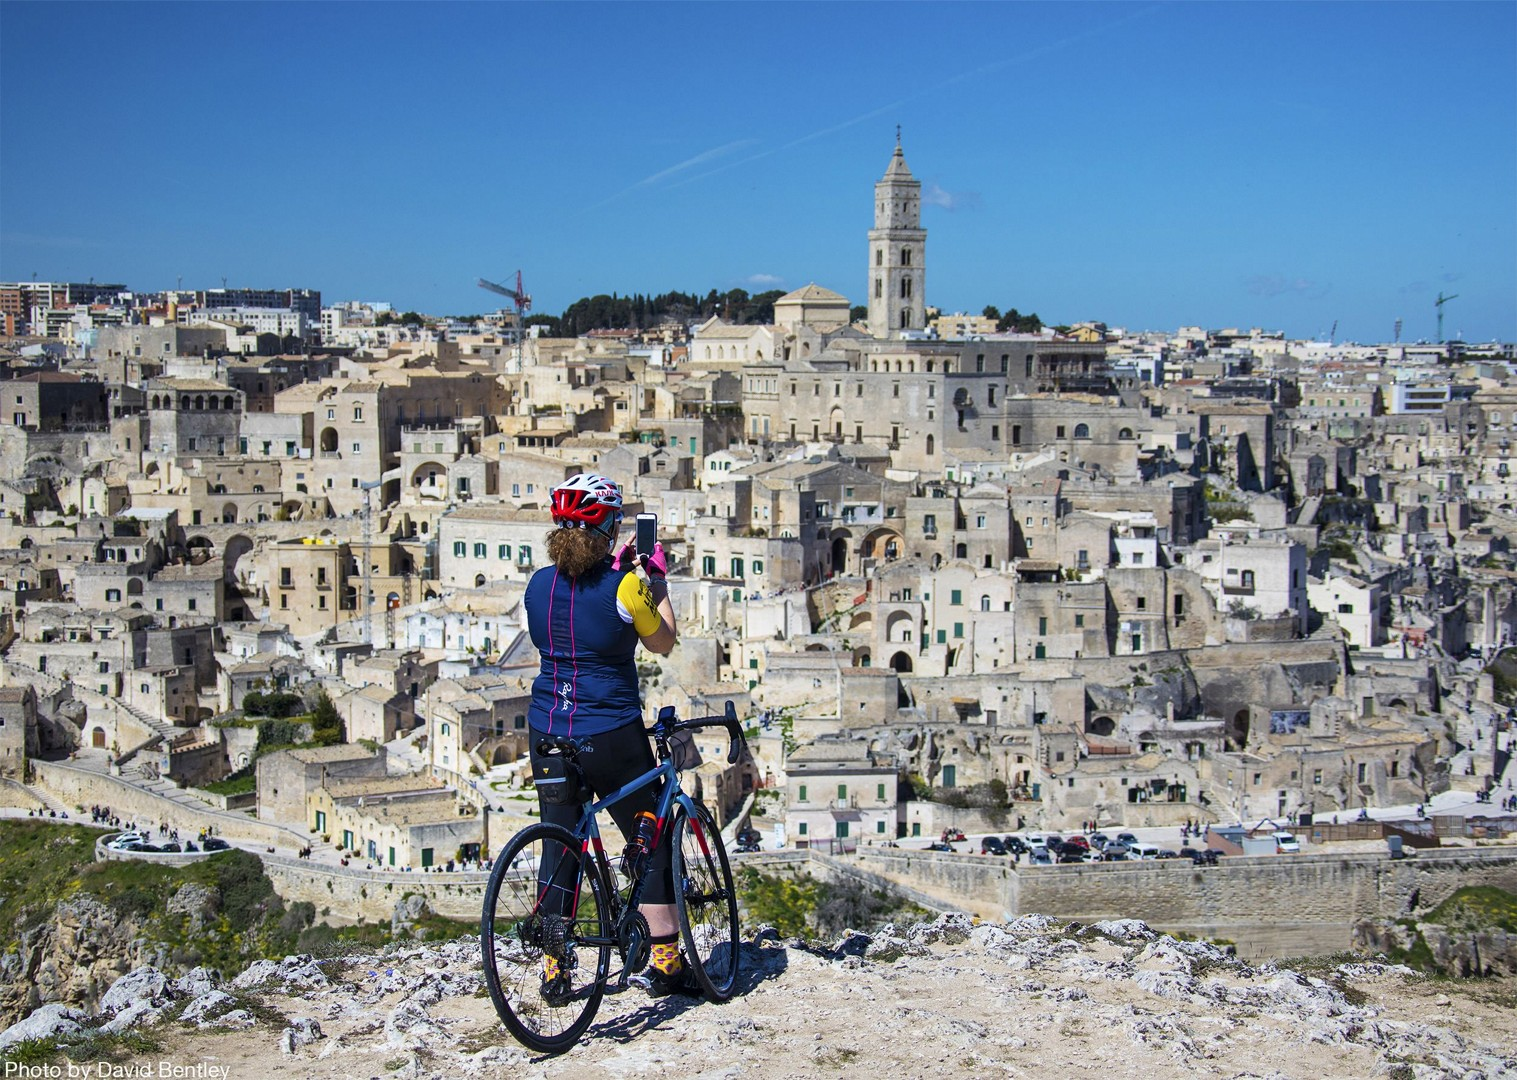 puglia2.jpg - Italy - Puglia - The Heel of Italy - Self-Guided Road Cycling Holiday - Italia Road Cycling